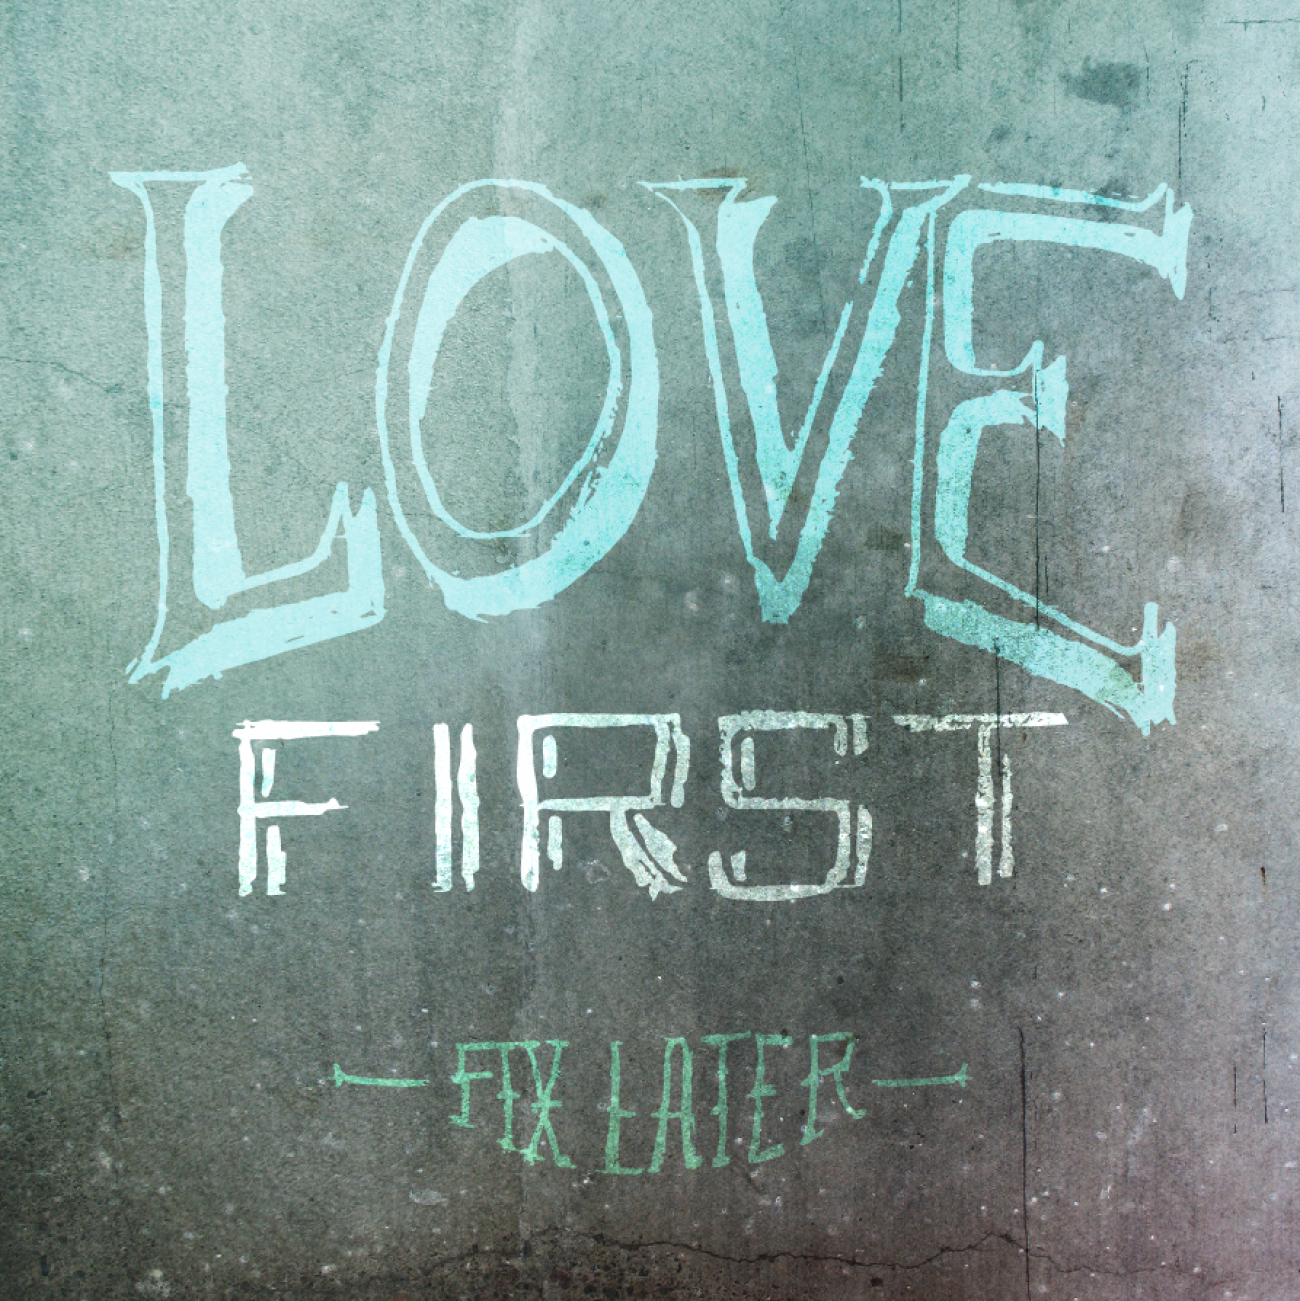 Love First Fix Later